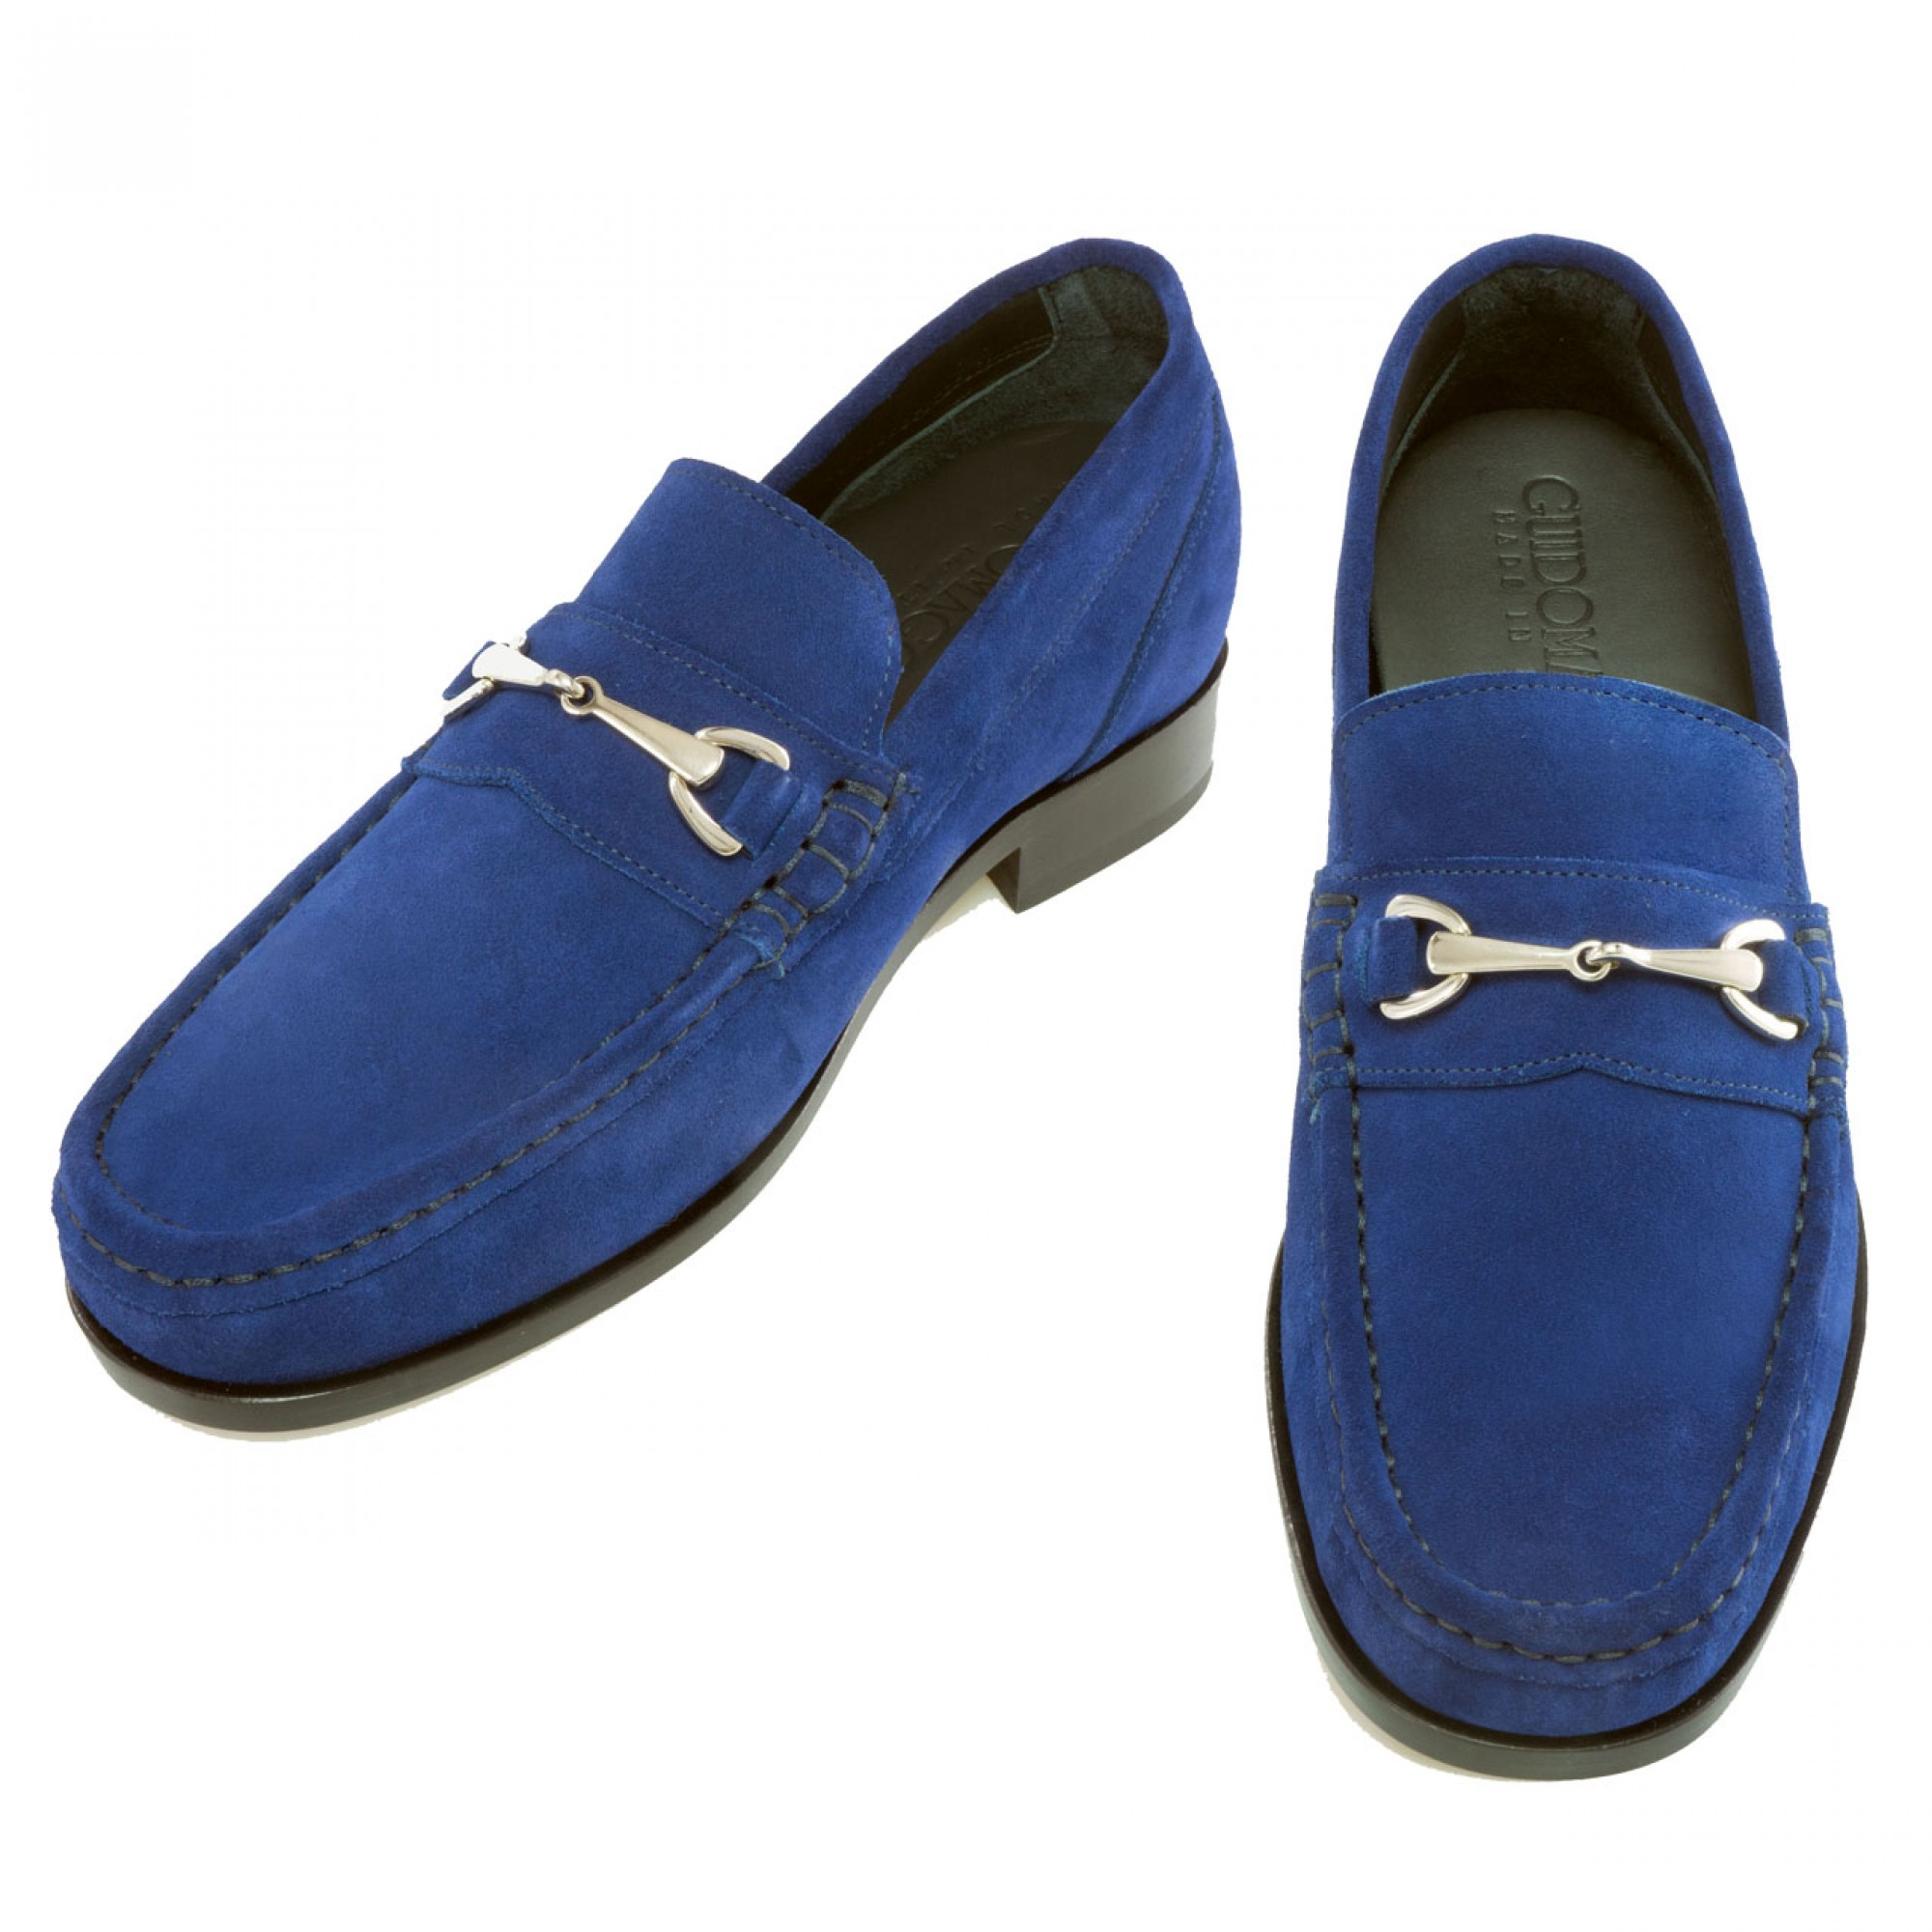 reims elevator loafers